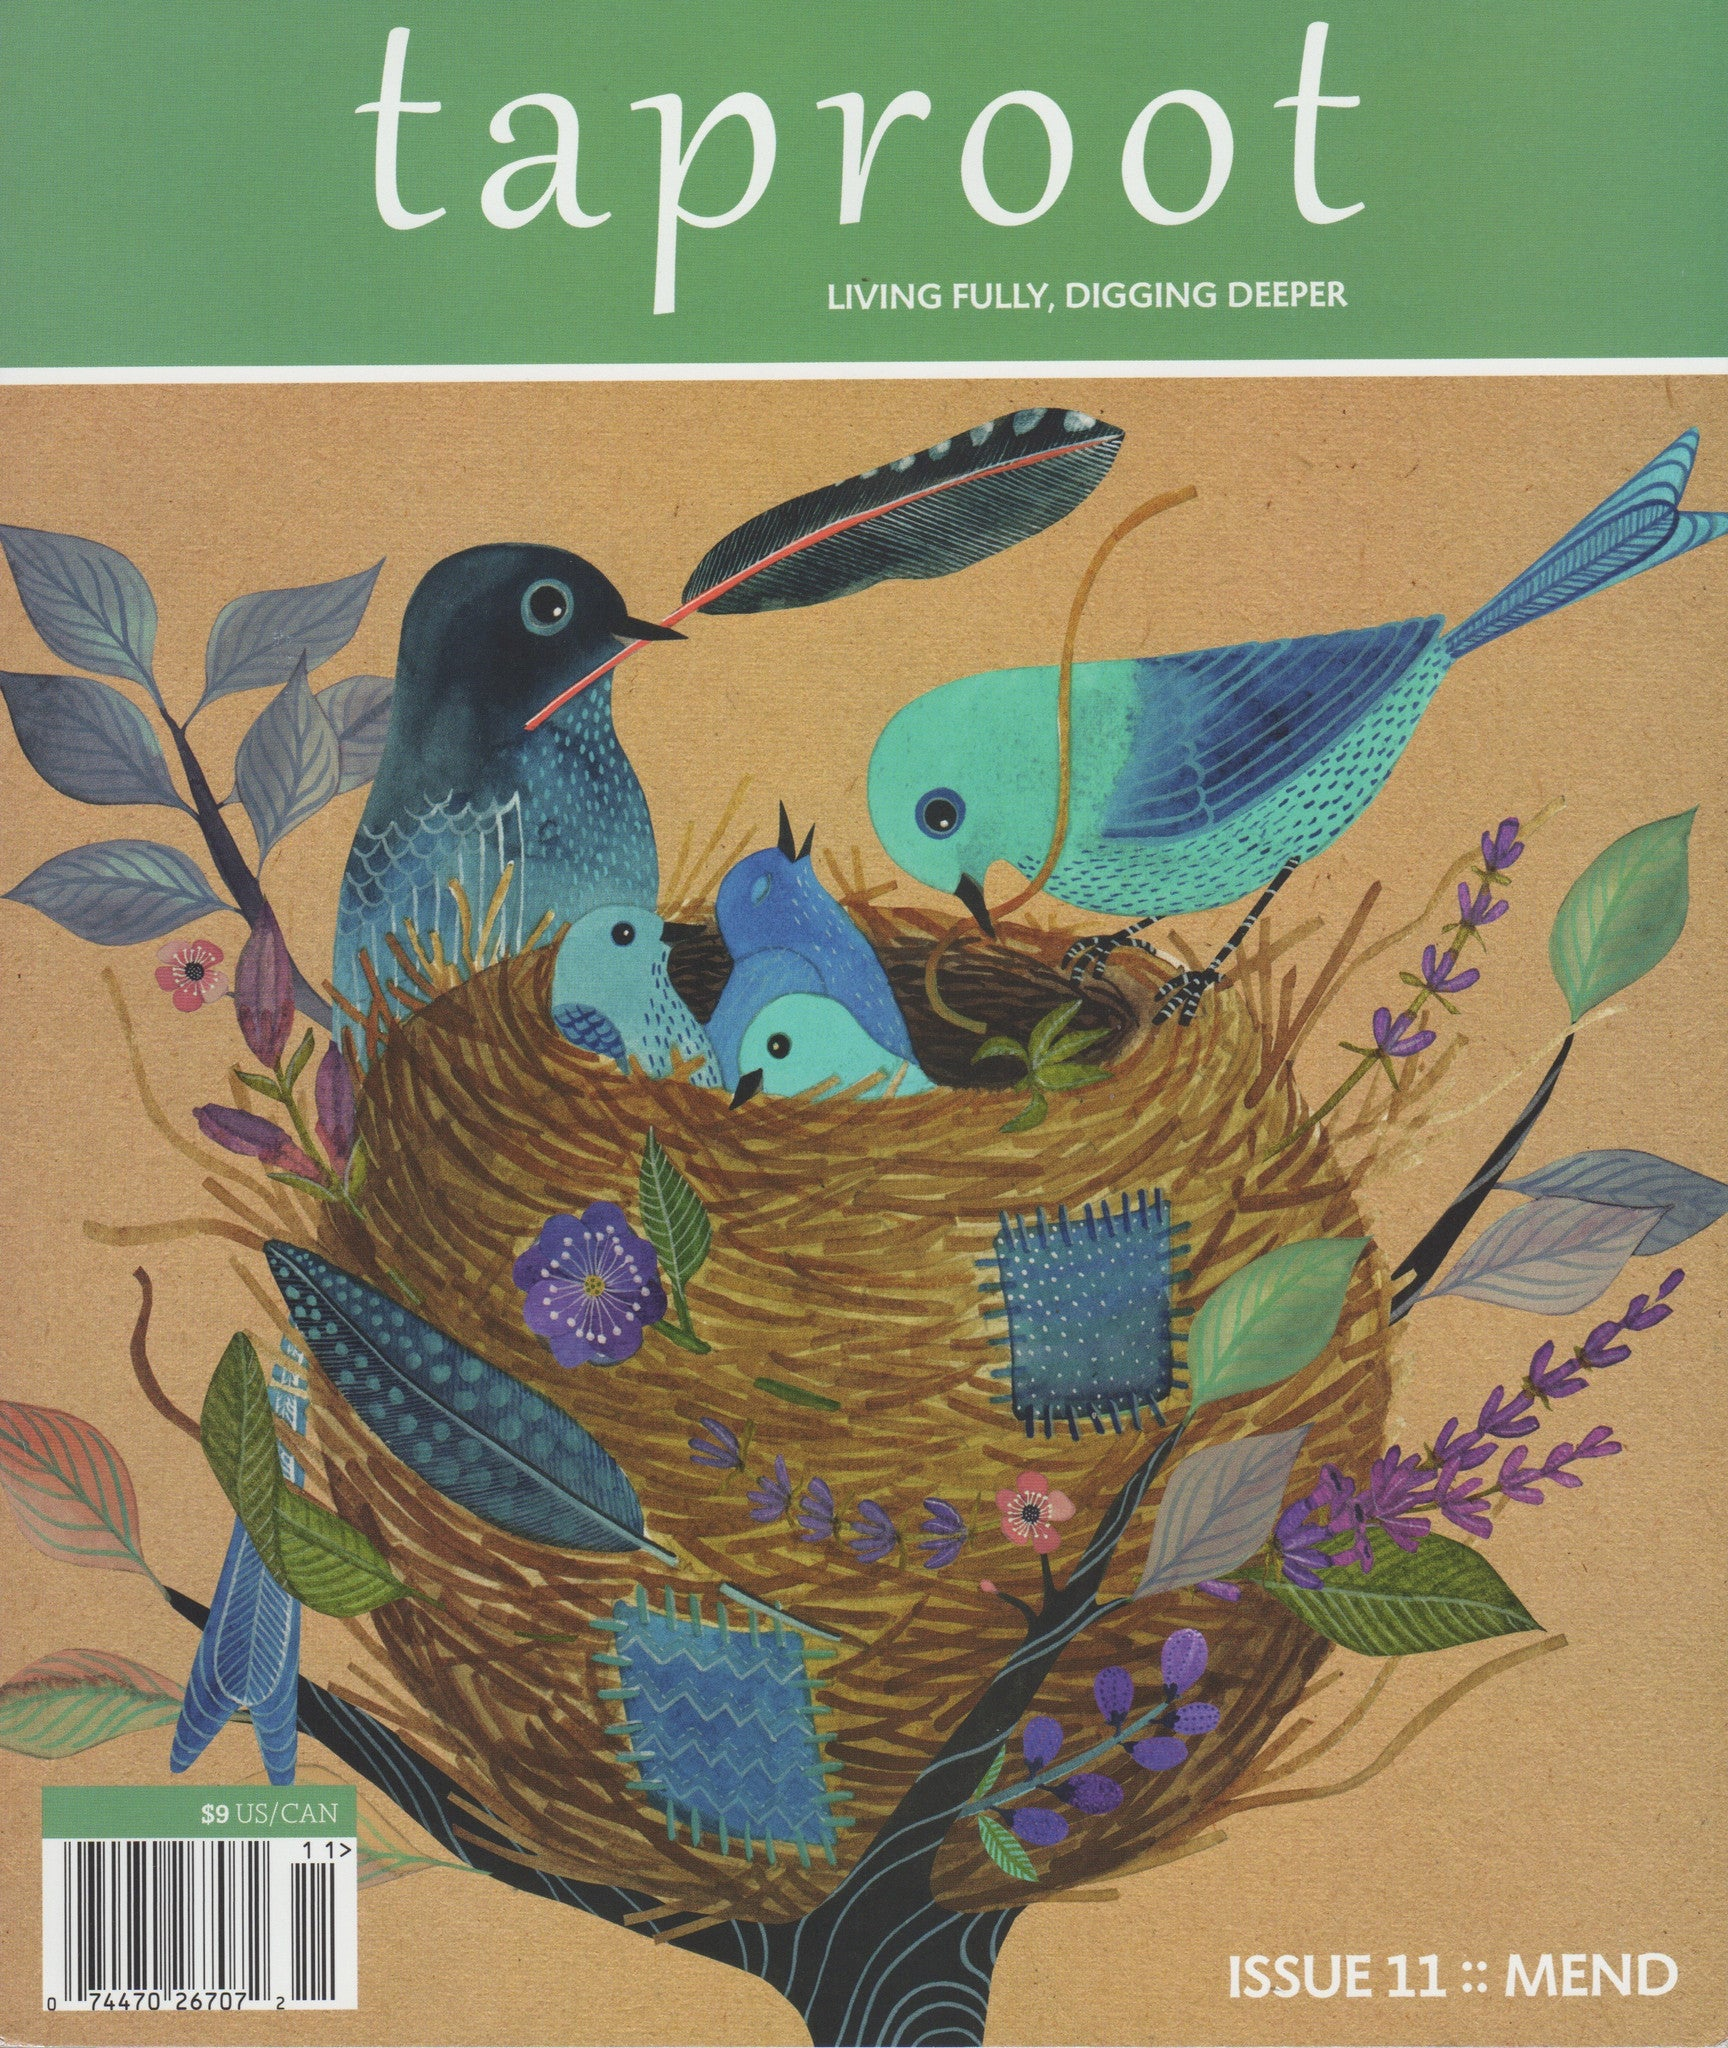 TAPROOT #11